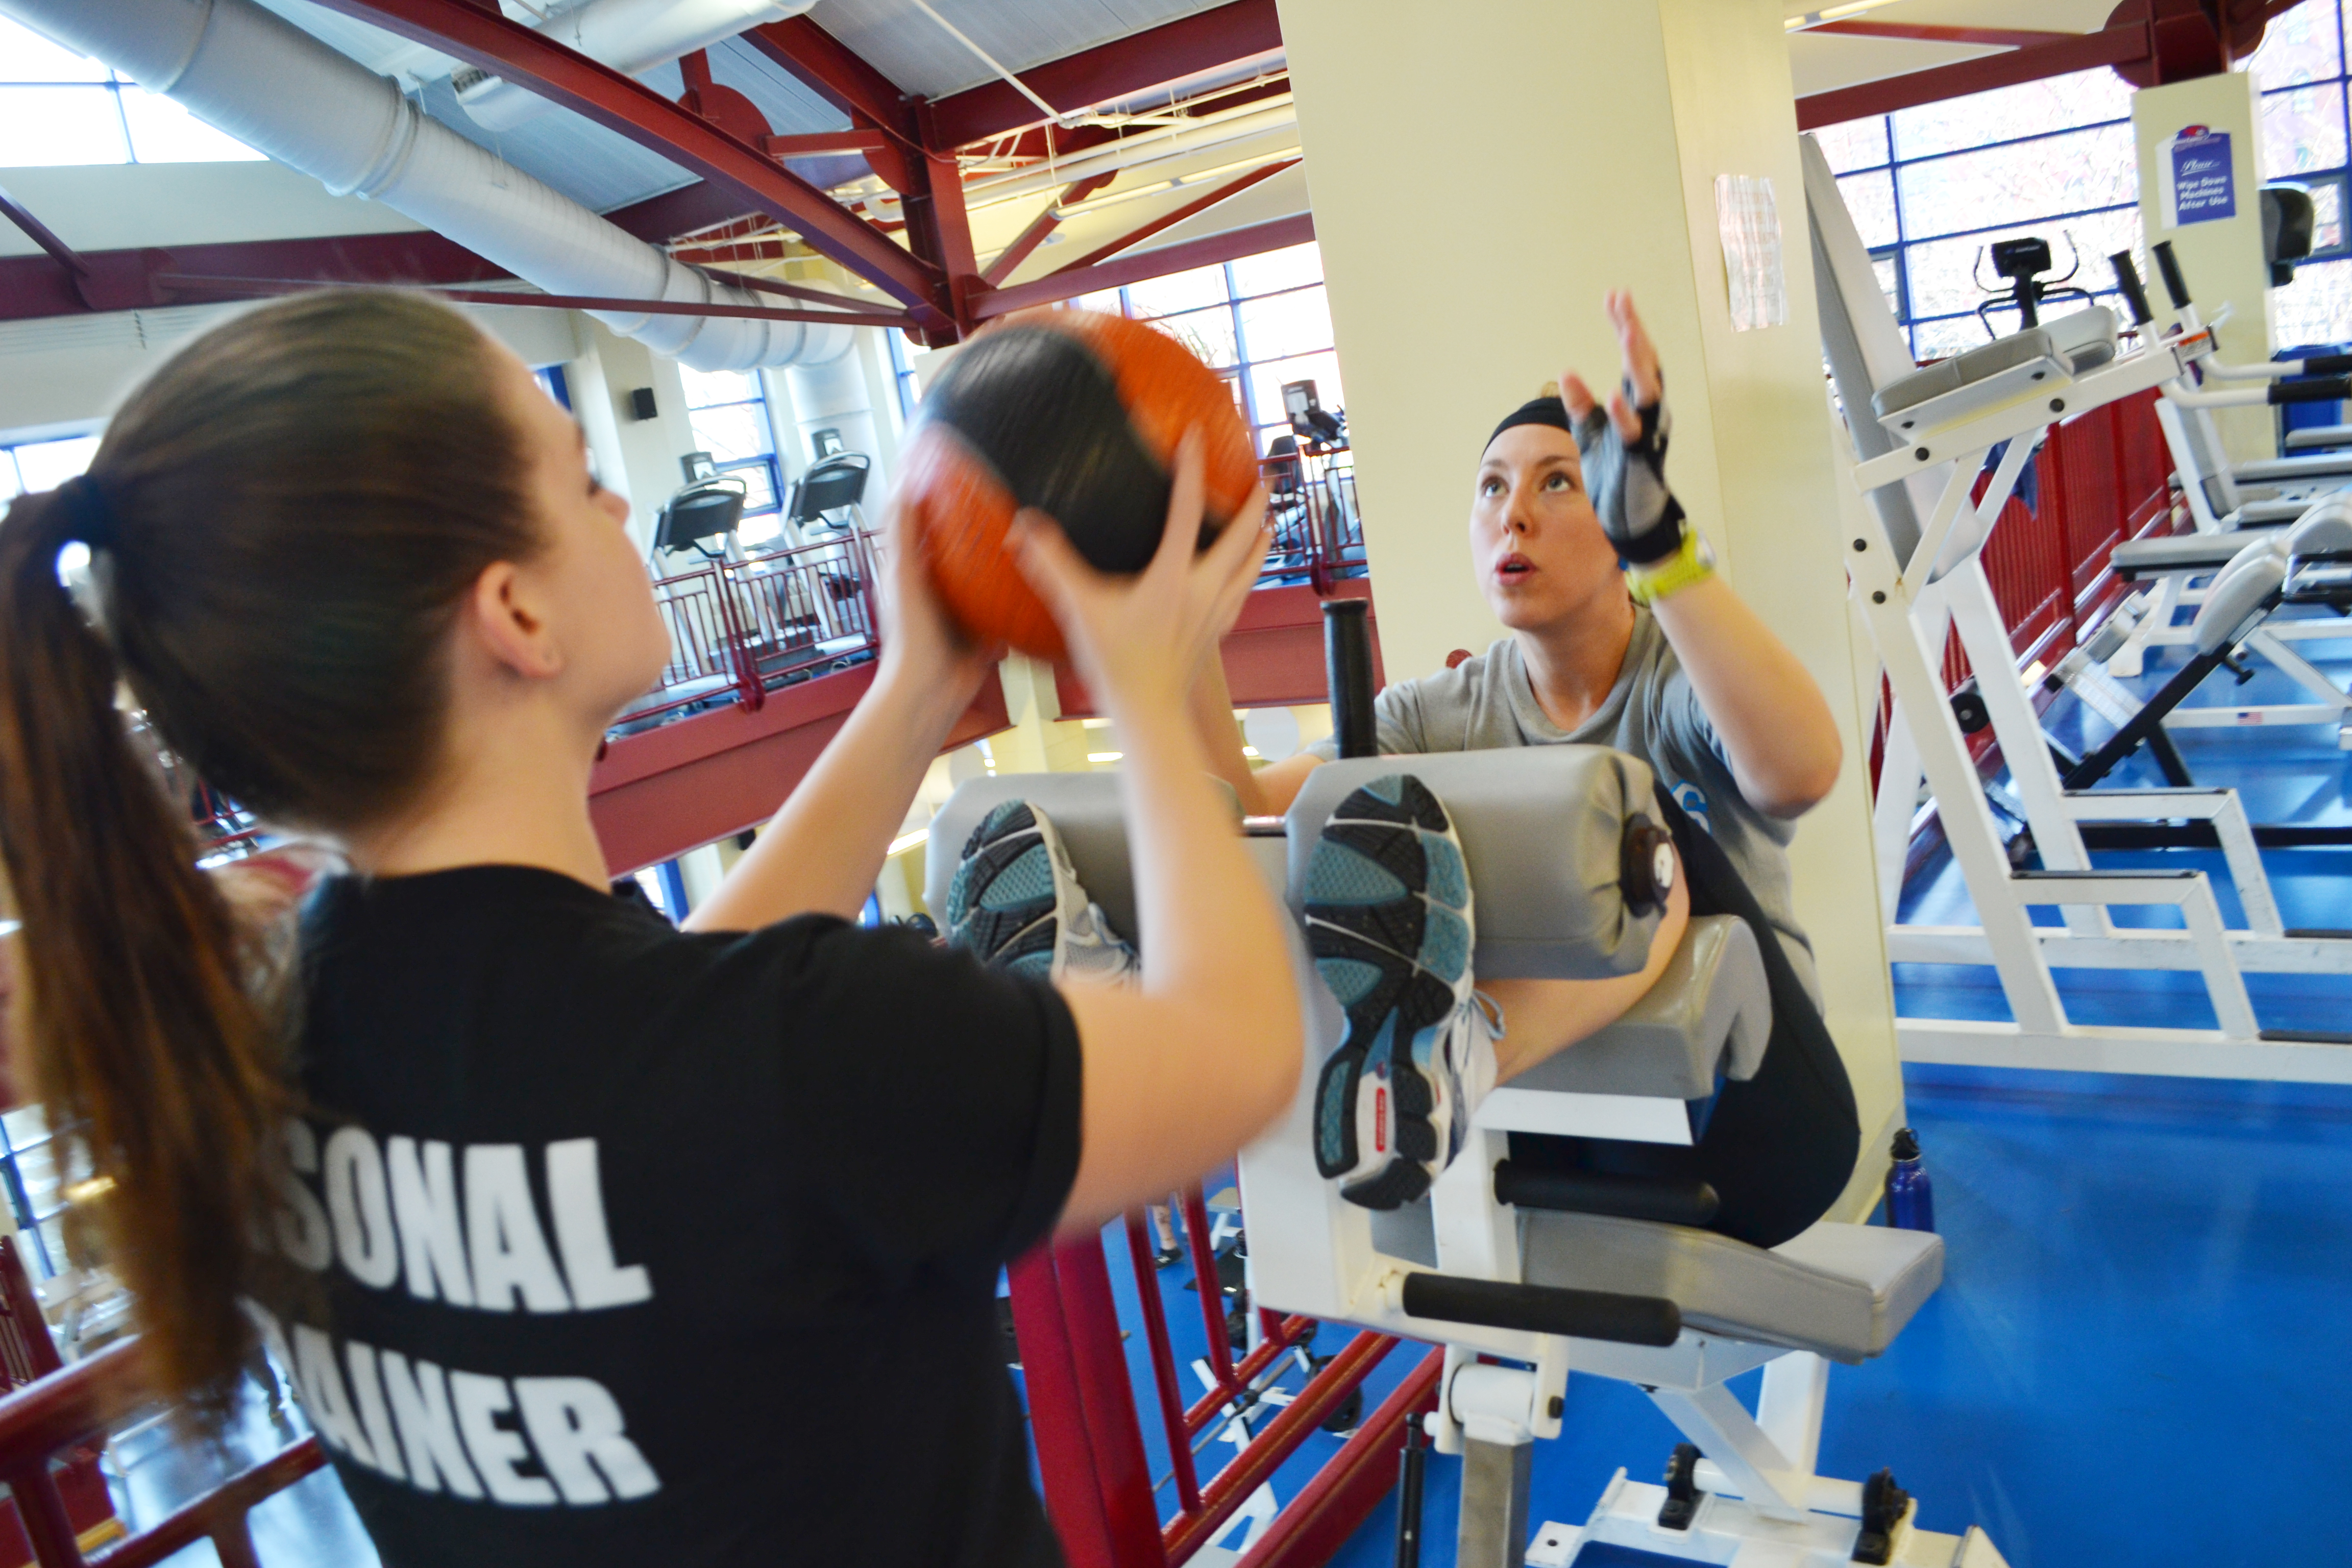 Personal Trainer Working with Student